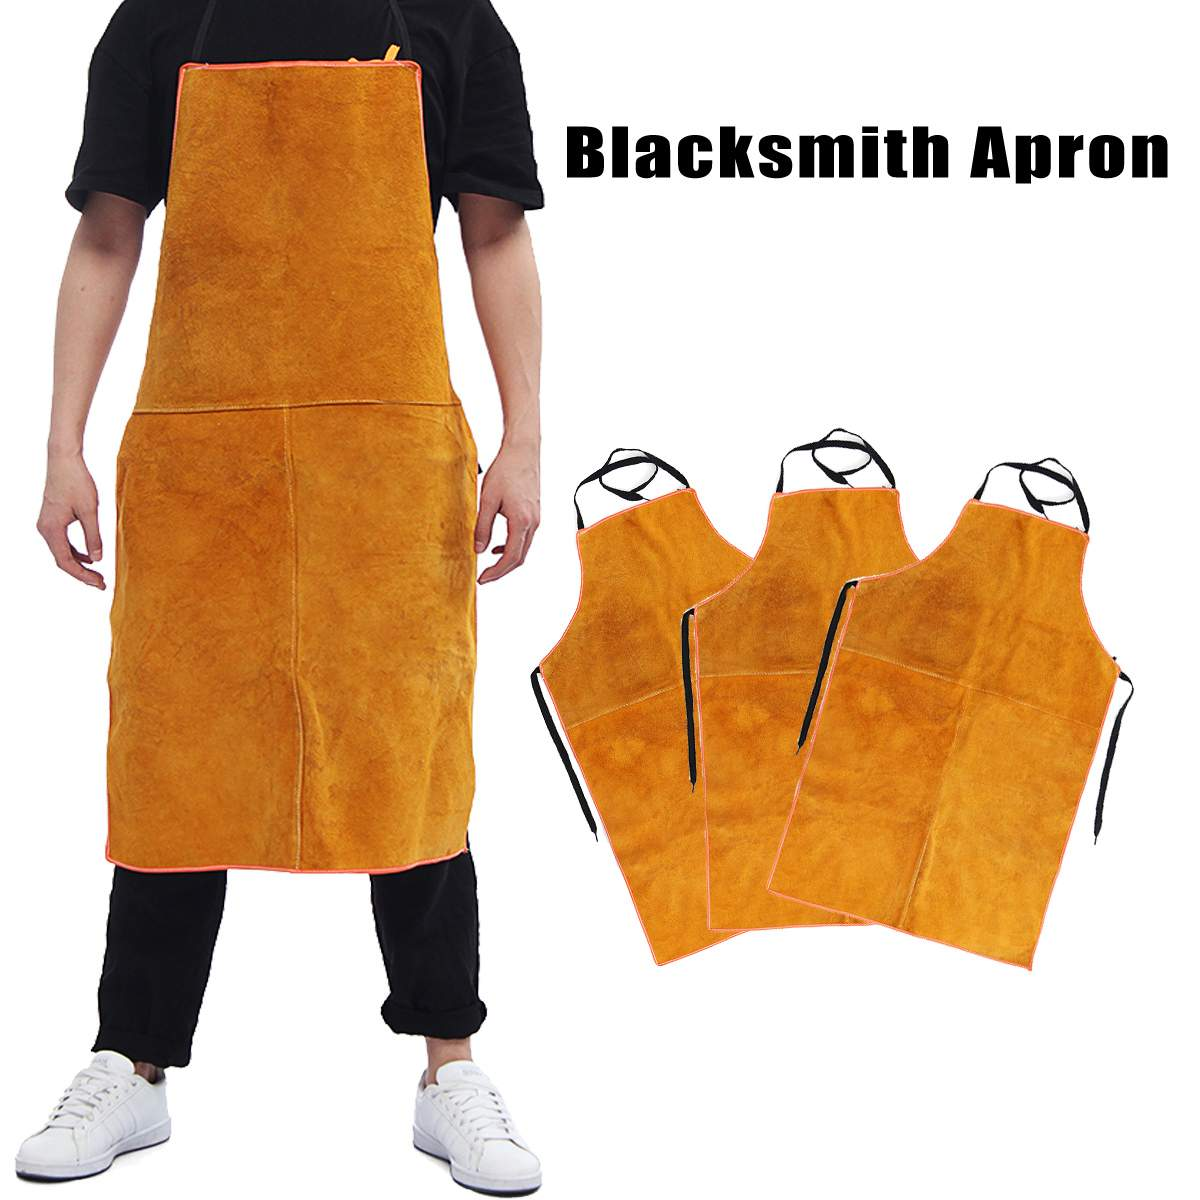 Full Cowhide Leather Electric Welding Apron Bib Blacksmith Apron Yellow Electric Welding Safety Clothing